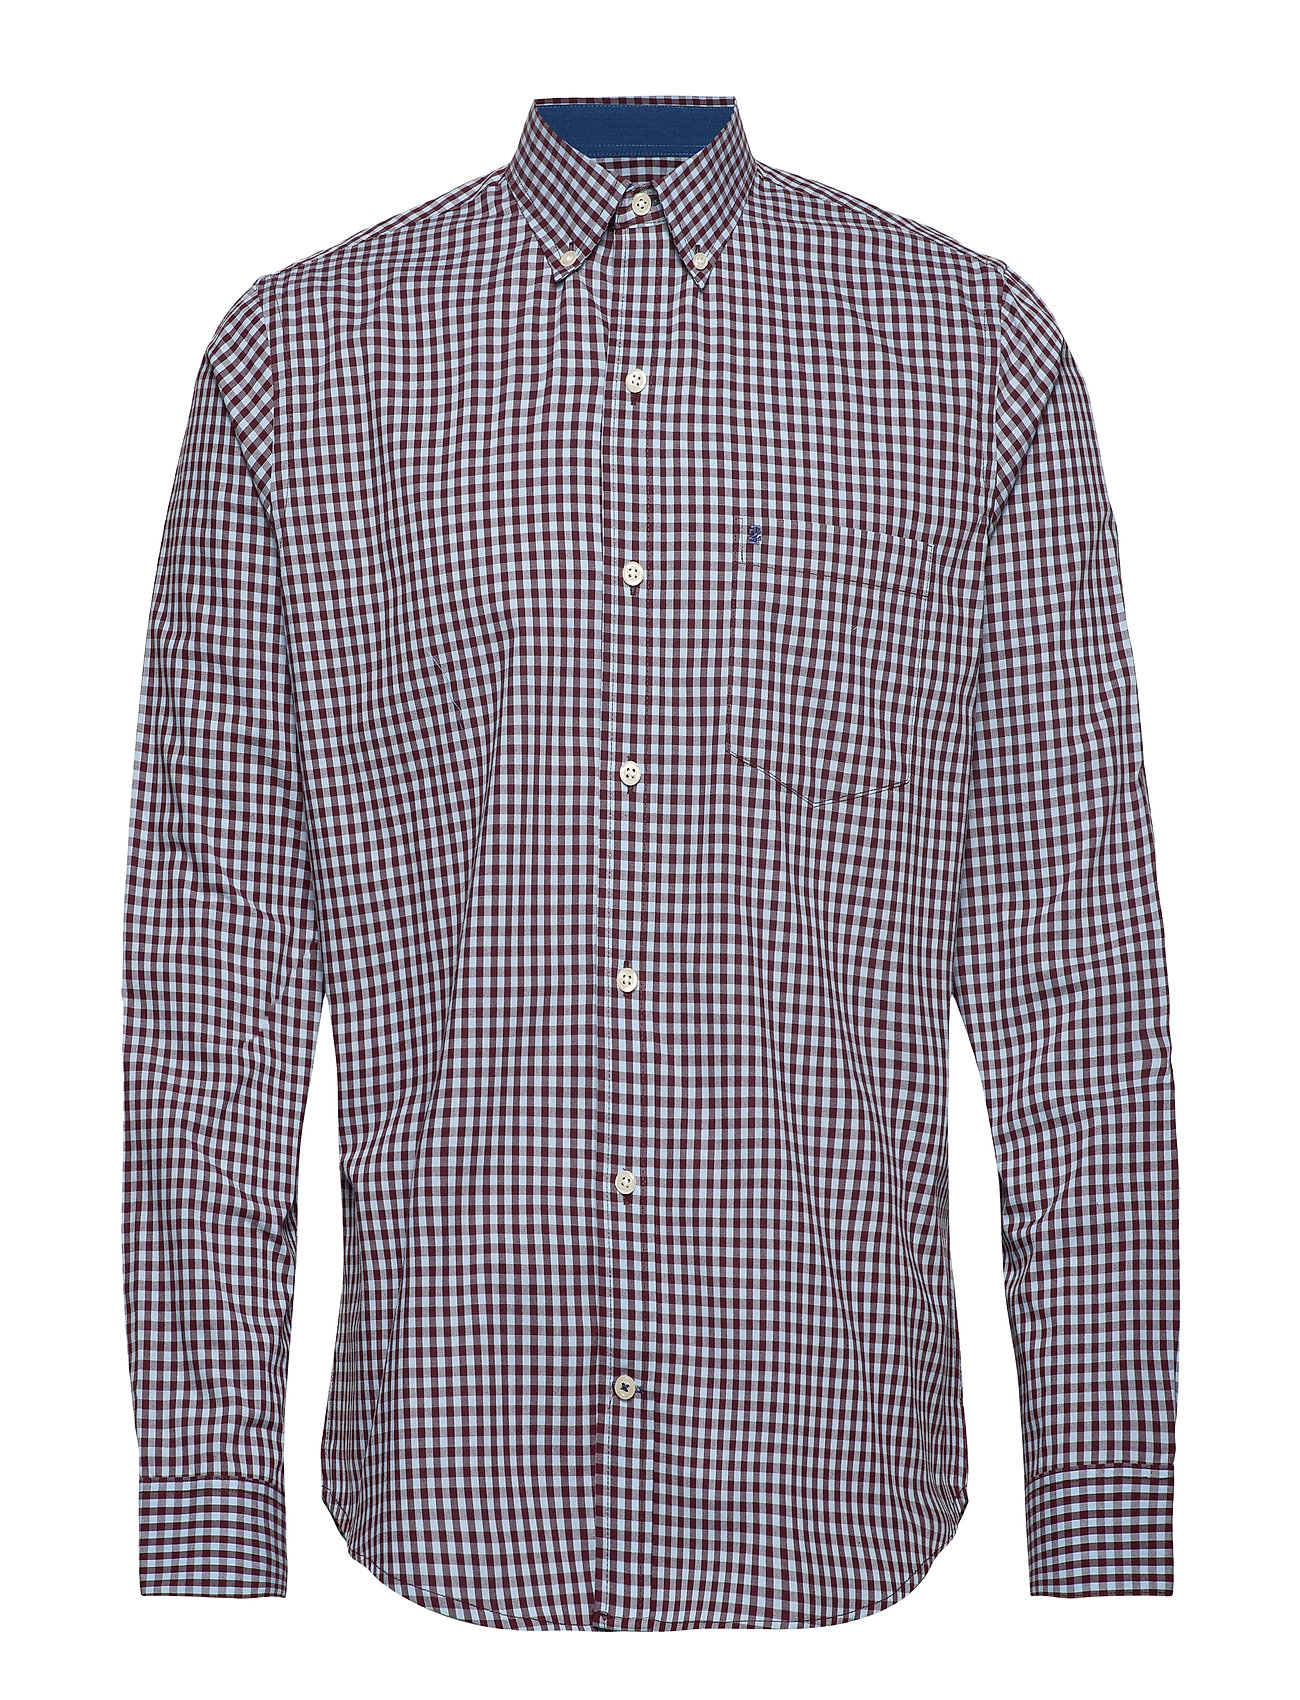 IZOD GINGHAM BD SHIRT - PORT ROYALE